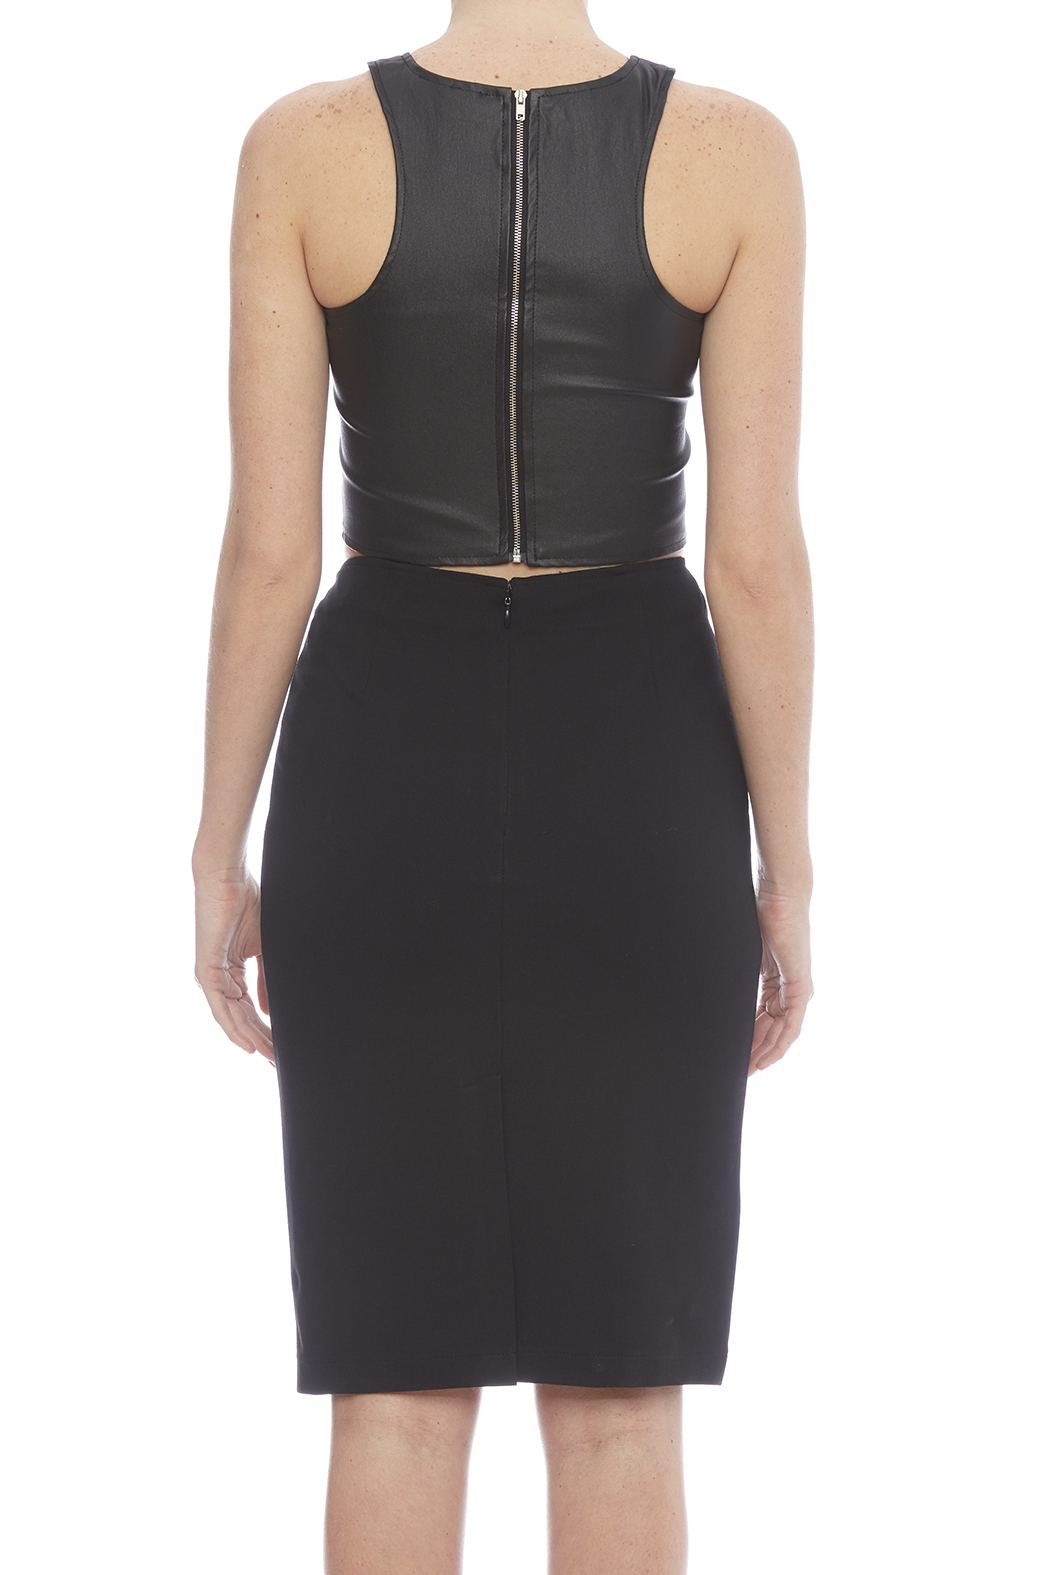 Alberto Makali Faux Leather Pencil Skirt - Back Cropped Image